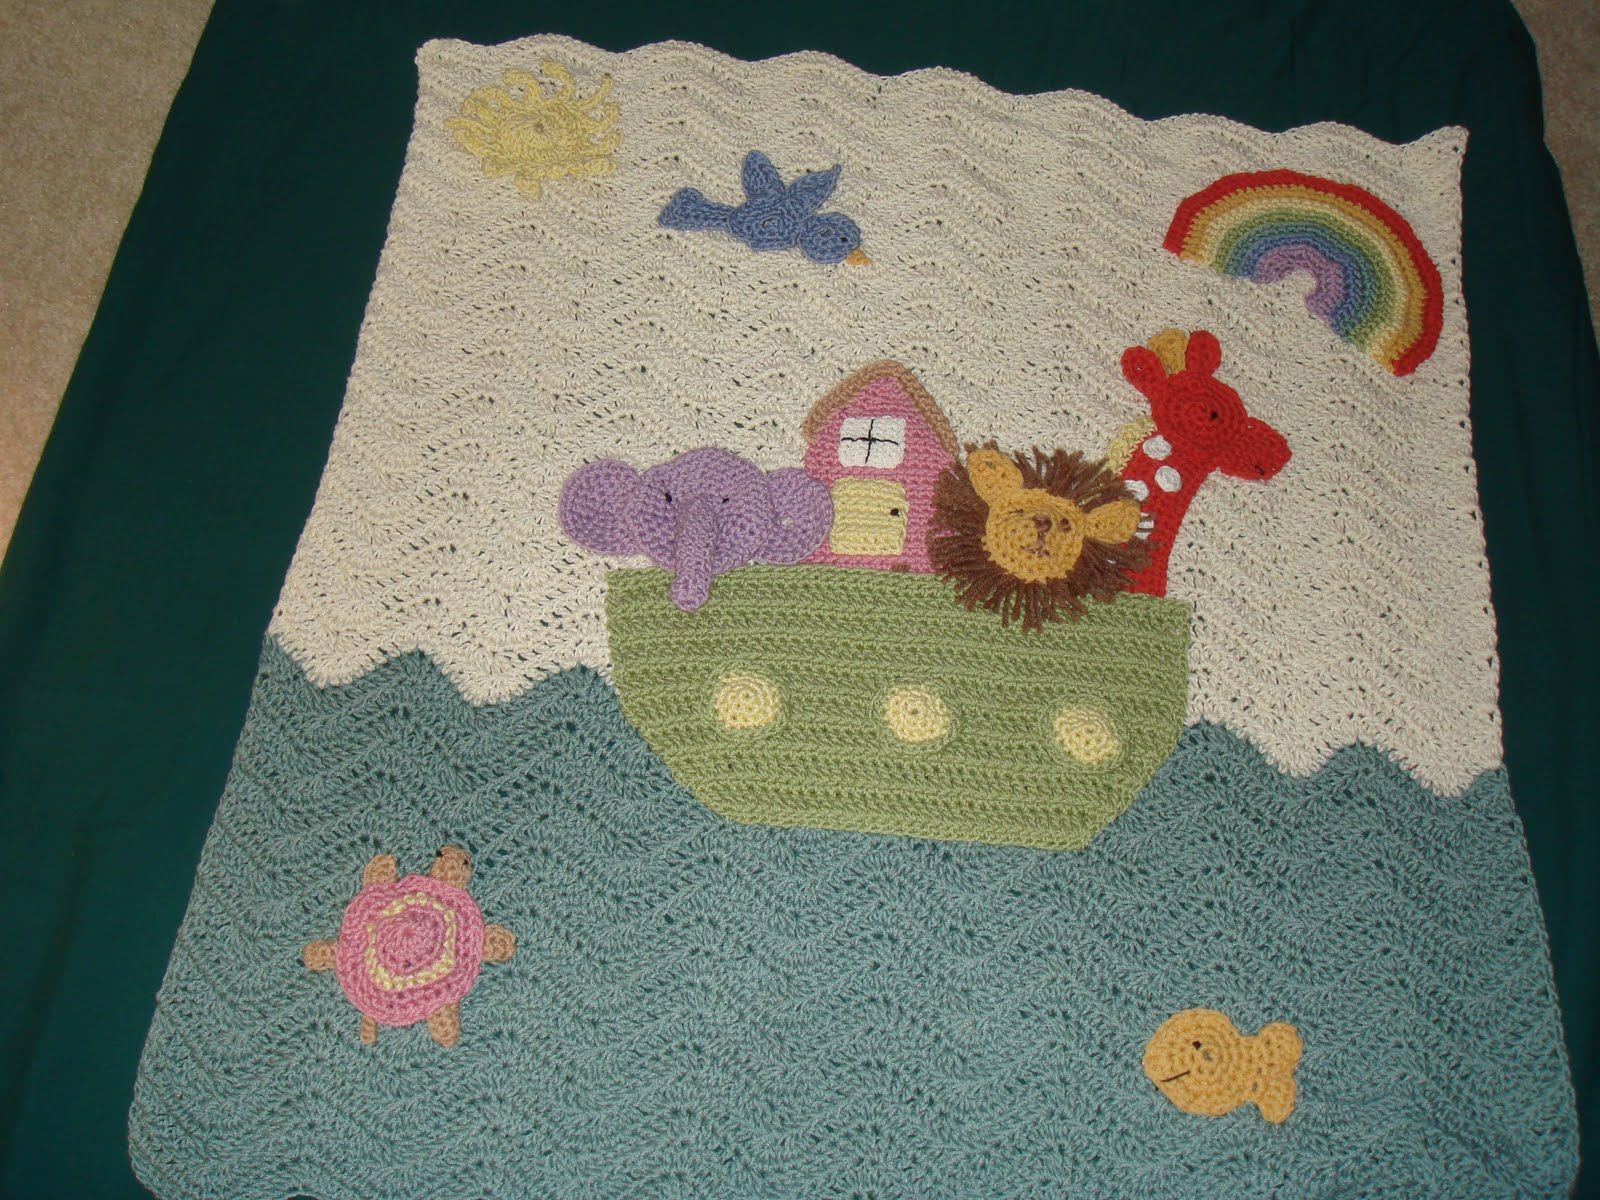 Noah S Ark Crochet Afghan Patterns Easy Crochet Patterns